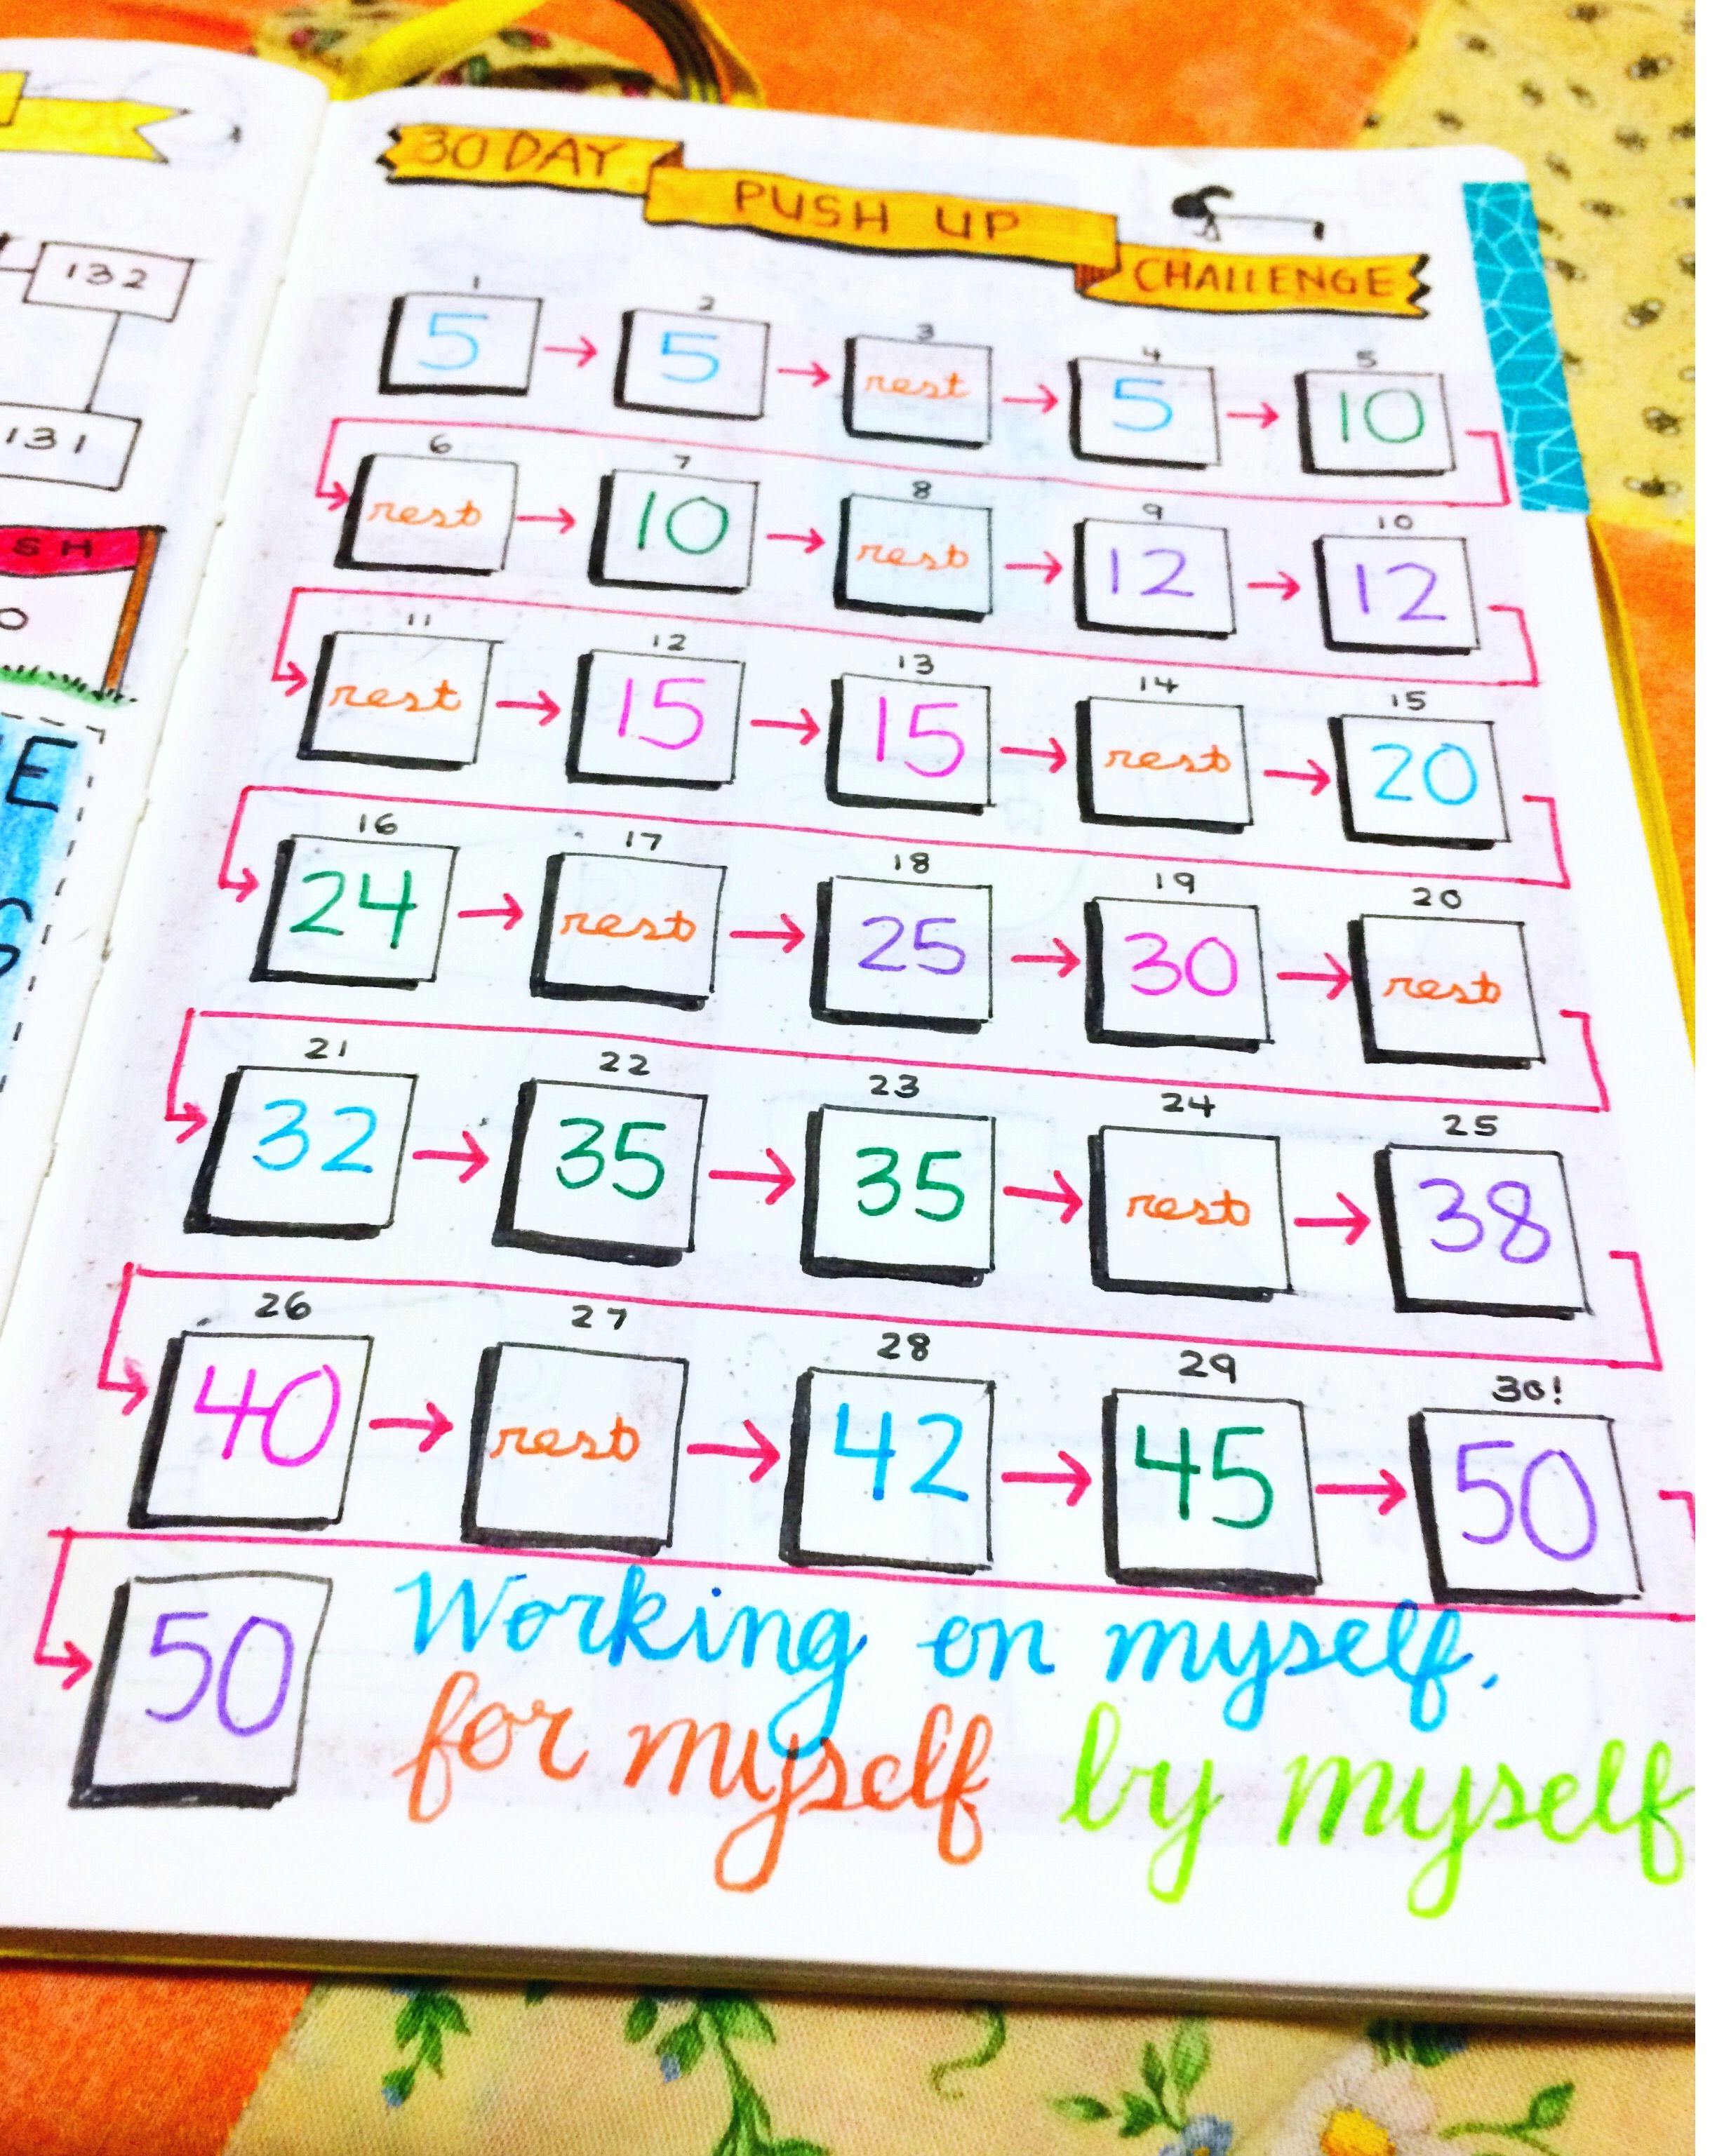 30 Day Push Up Challenge Bullet Journal Collections | Push ...